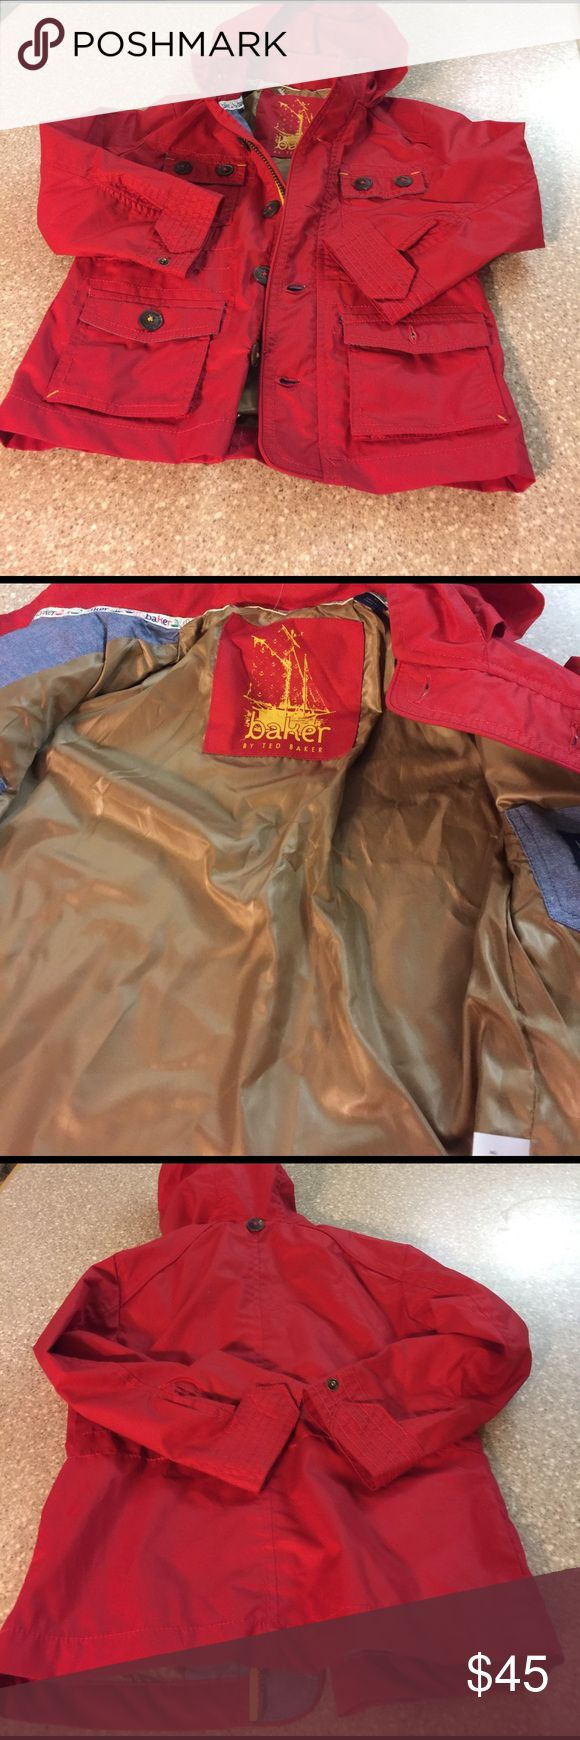 Child's coat Red lined ted baker child's coat with hood,  button down and zipper; includes inside pockets as well as pockets on front, unworn, without tags Baker by Ted Baker Jackets & Coats Raincoats